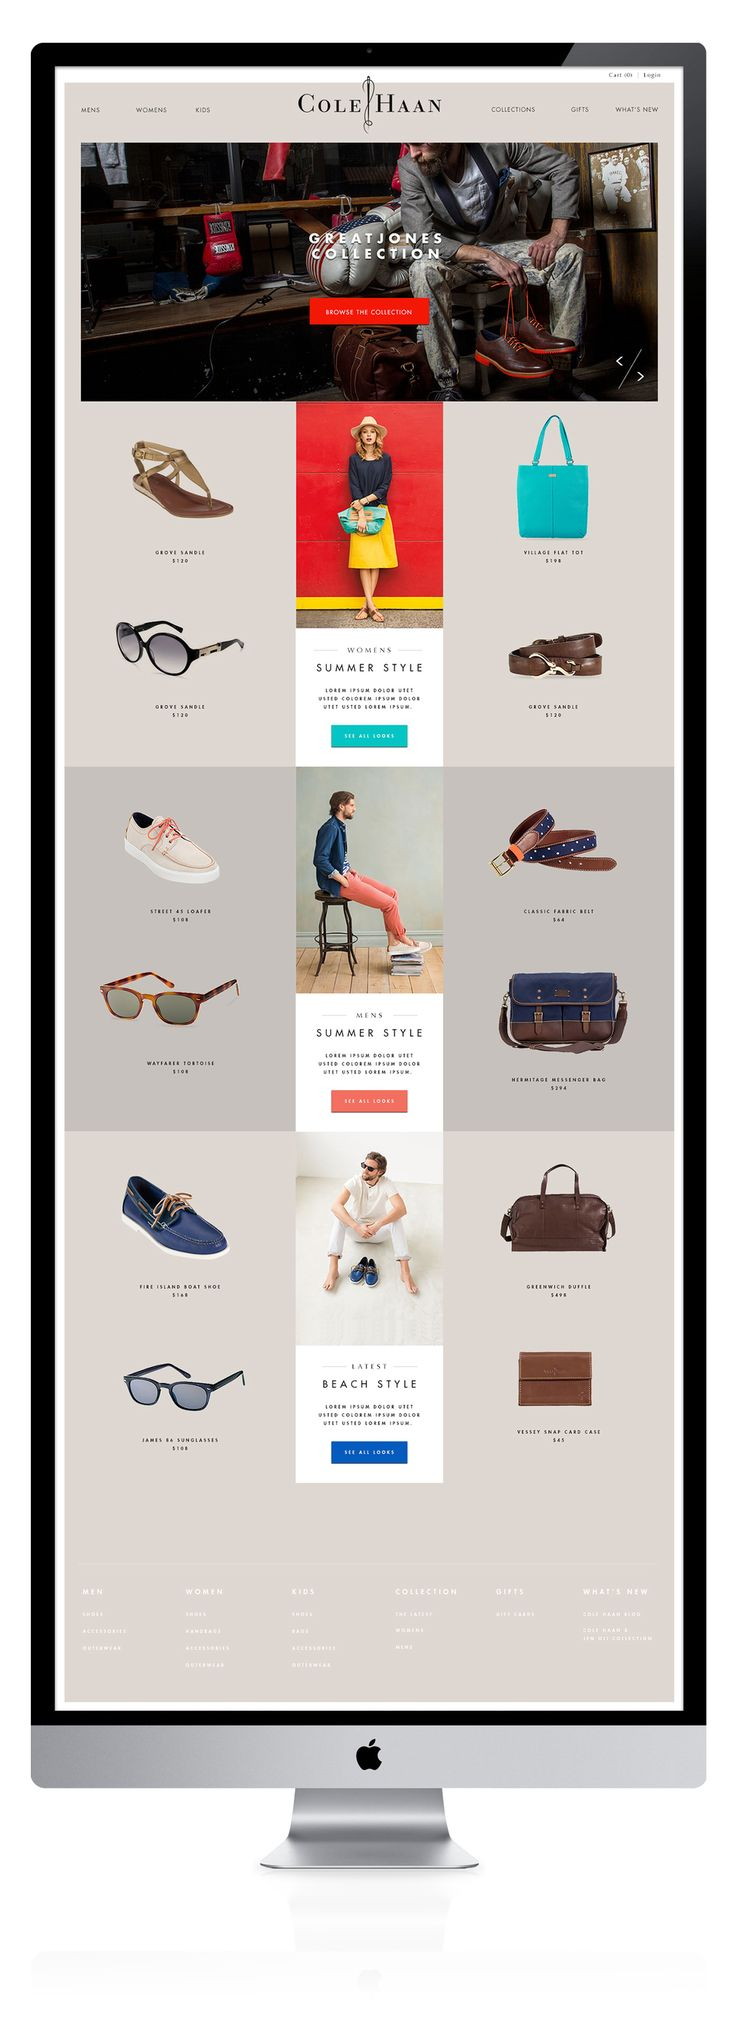 Cole Haan Home Page